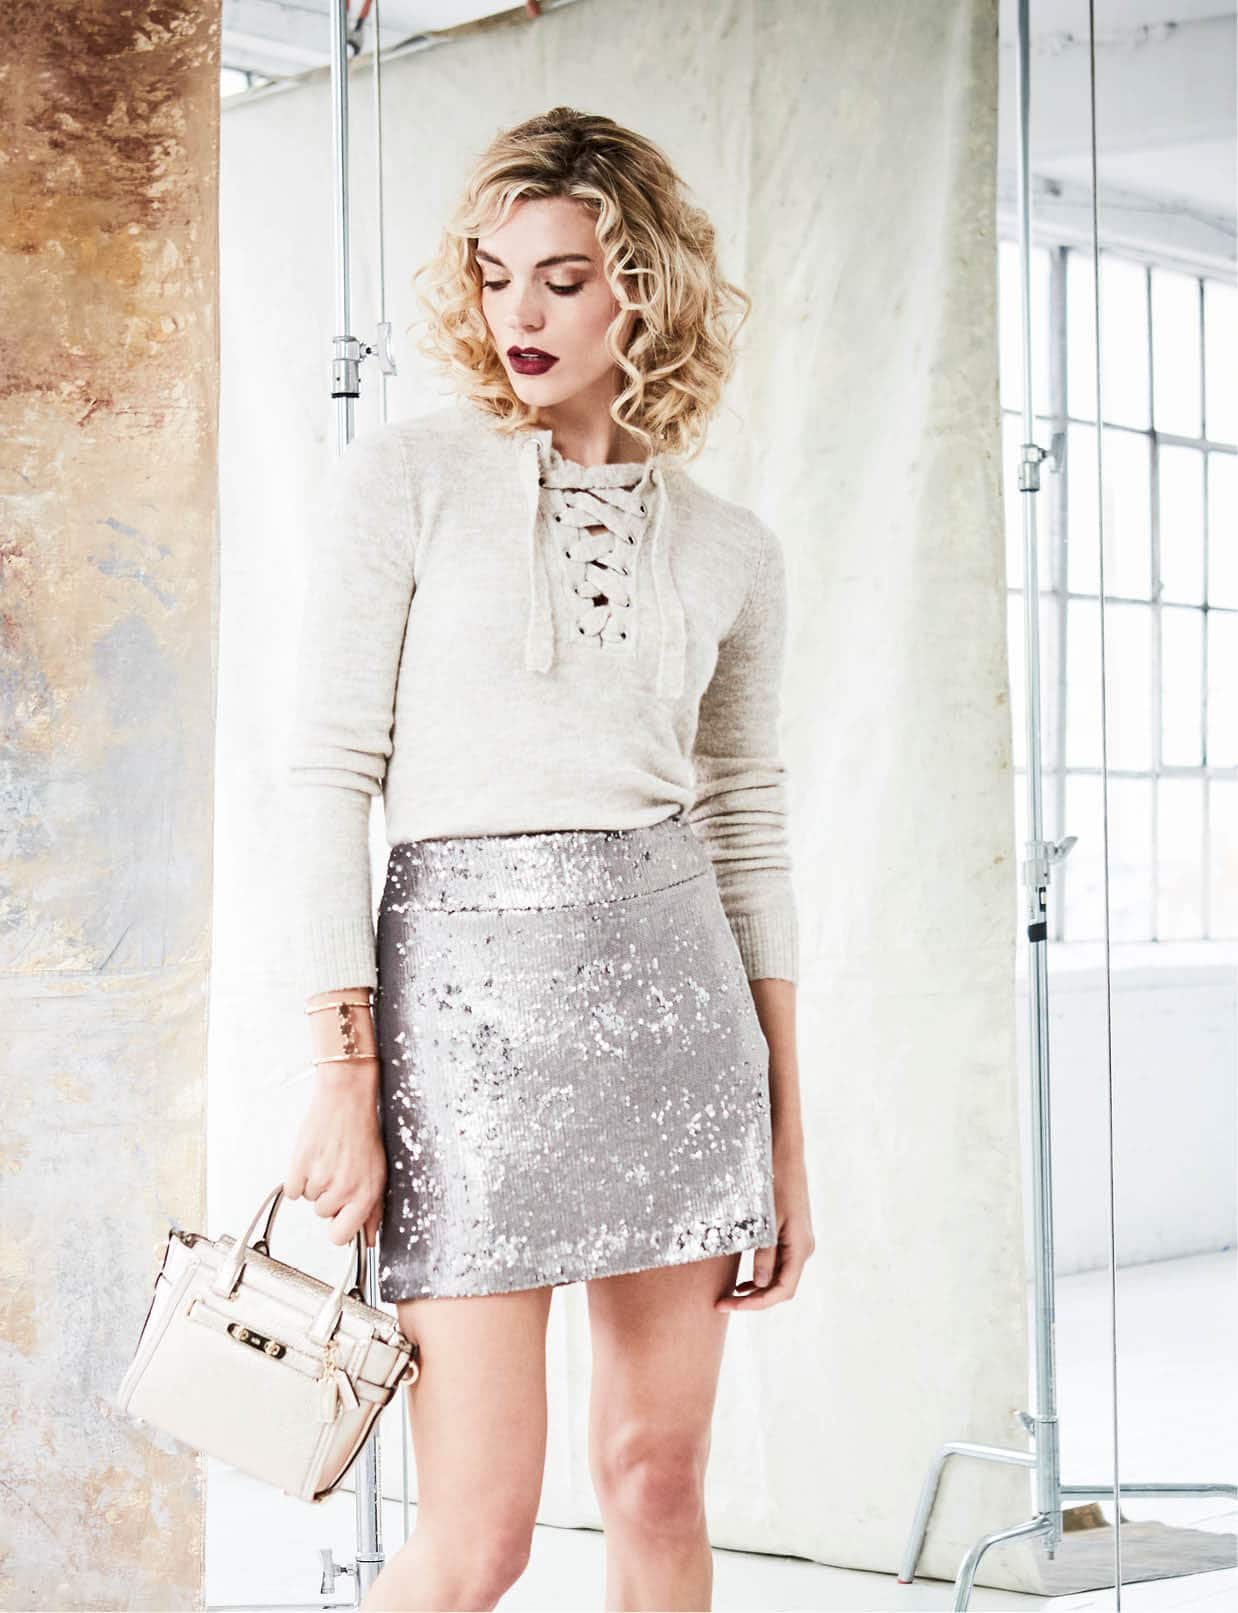 Kensic sweater, $79, Macy's. Halston sequin skirt, $245, Tootsies. Vince Camuto bracelet, $78, Belk. Coach bag, $350, Belk.